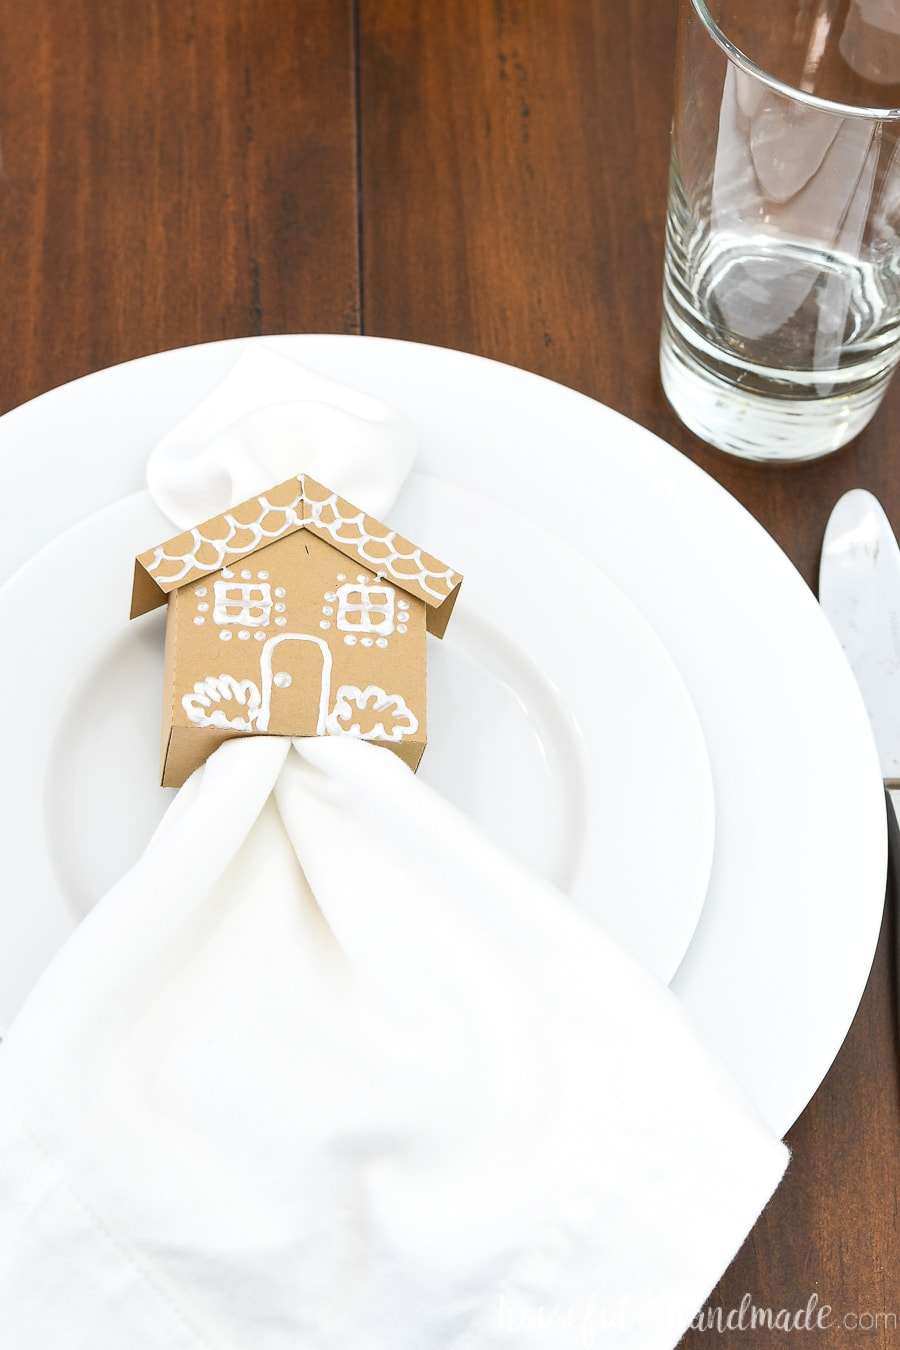 Close up of the paper gingerbread house napkin ring with a white fabric napkin inside sitting on a place setting.